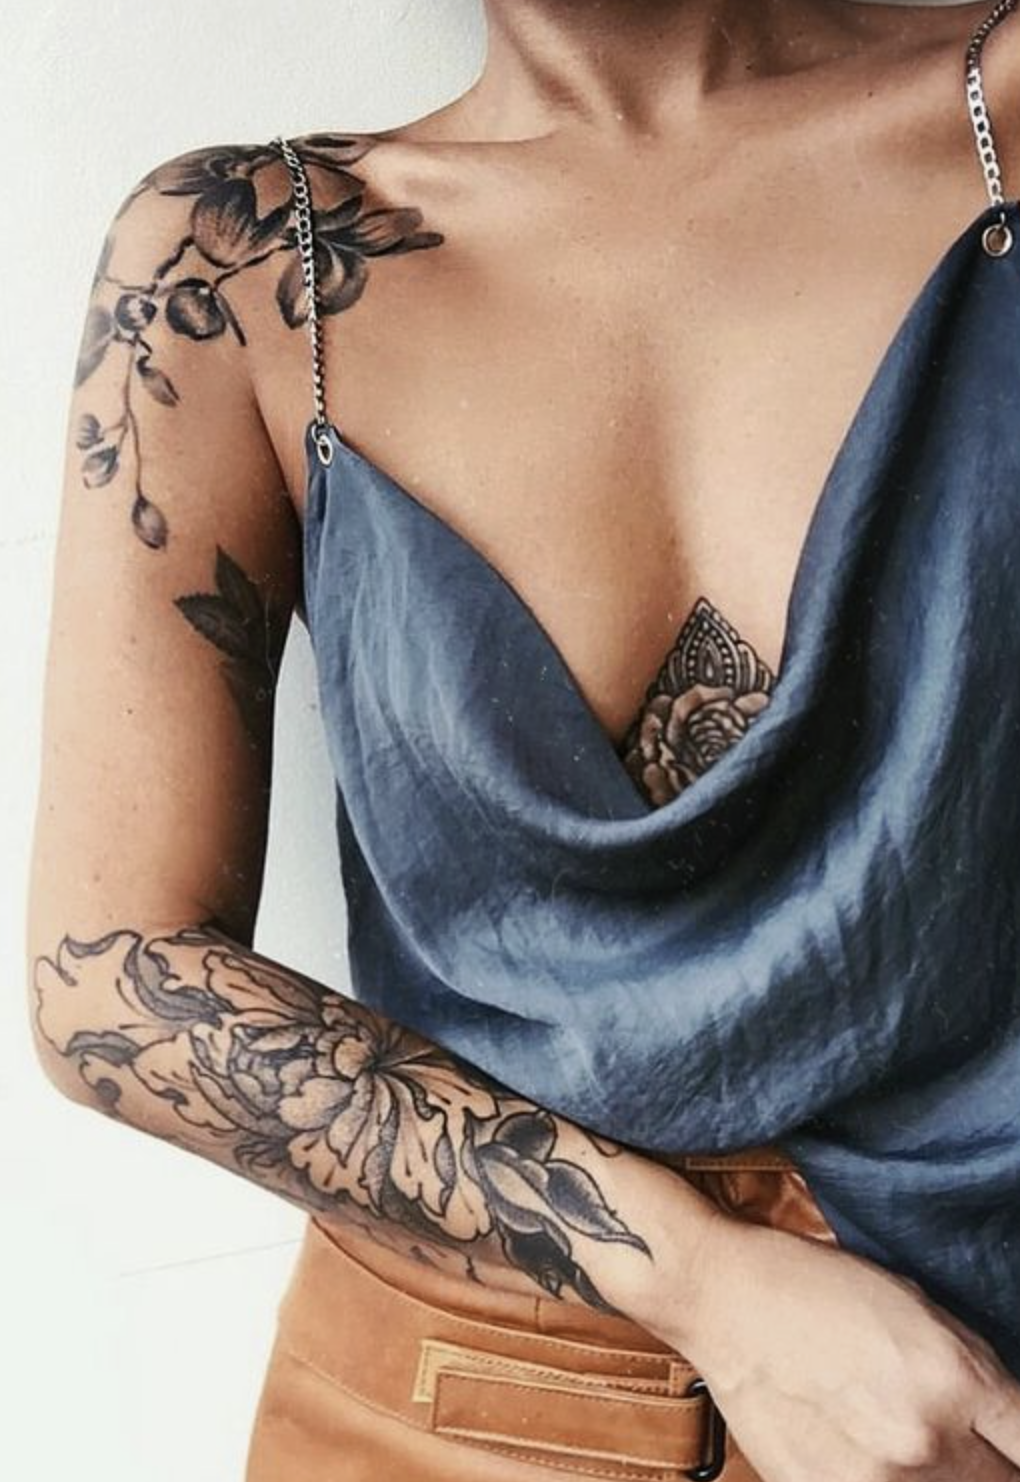 I Xi Xvii Tattoos Sleeve Tattoos For Women Trendy Tattoos